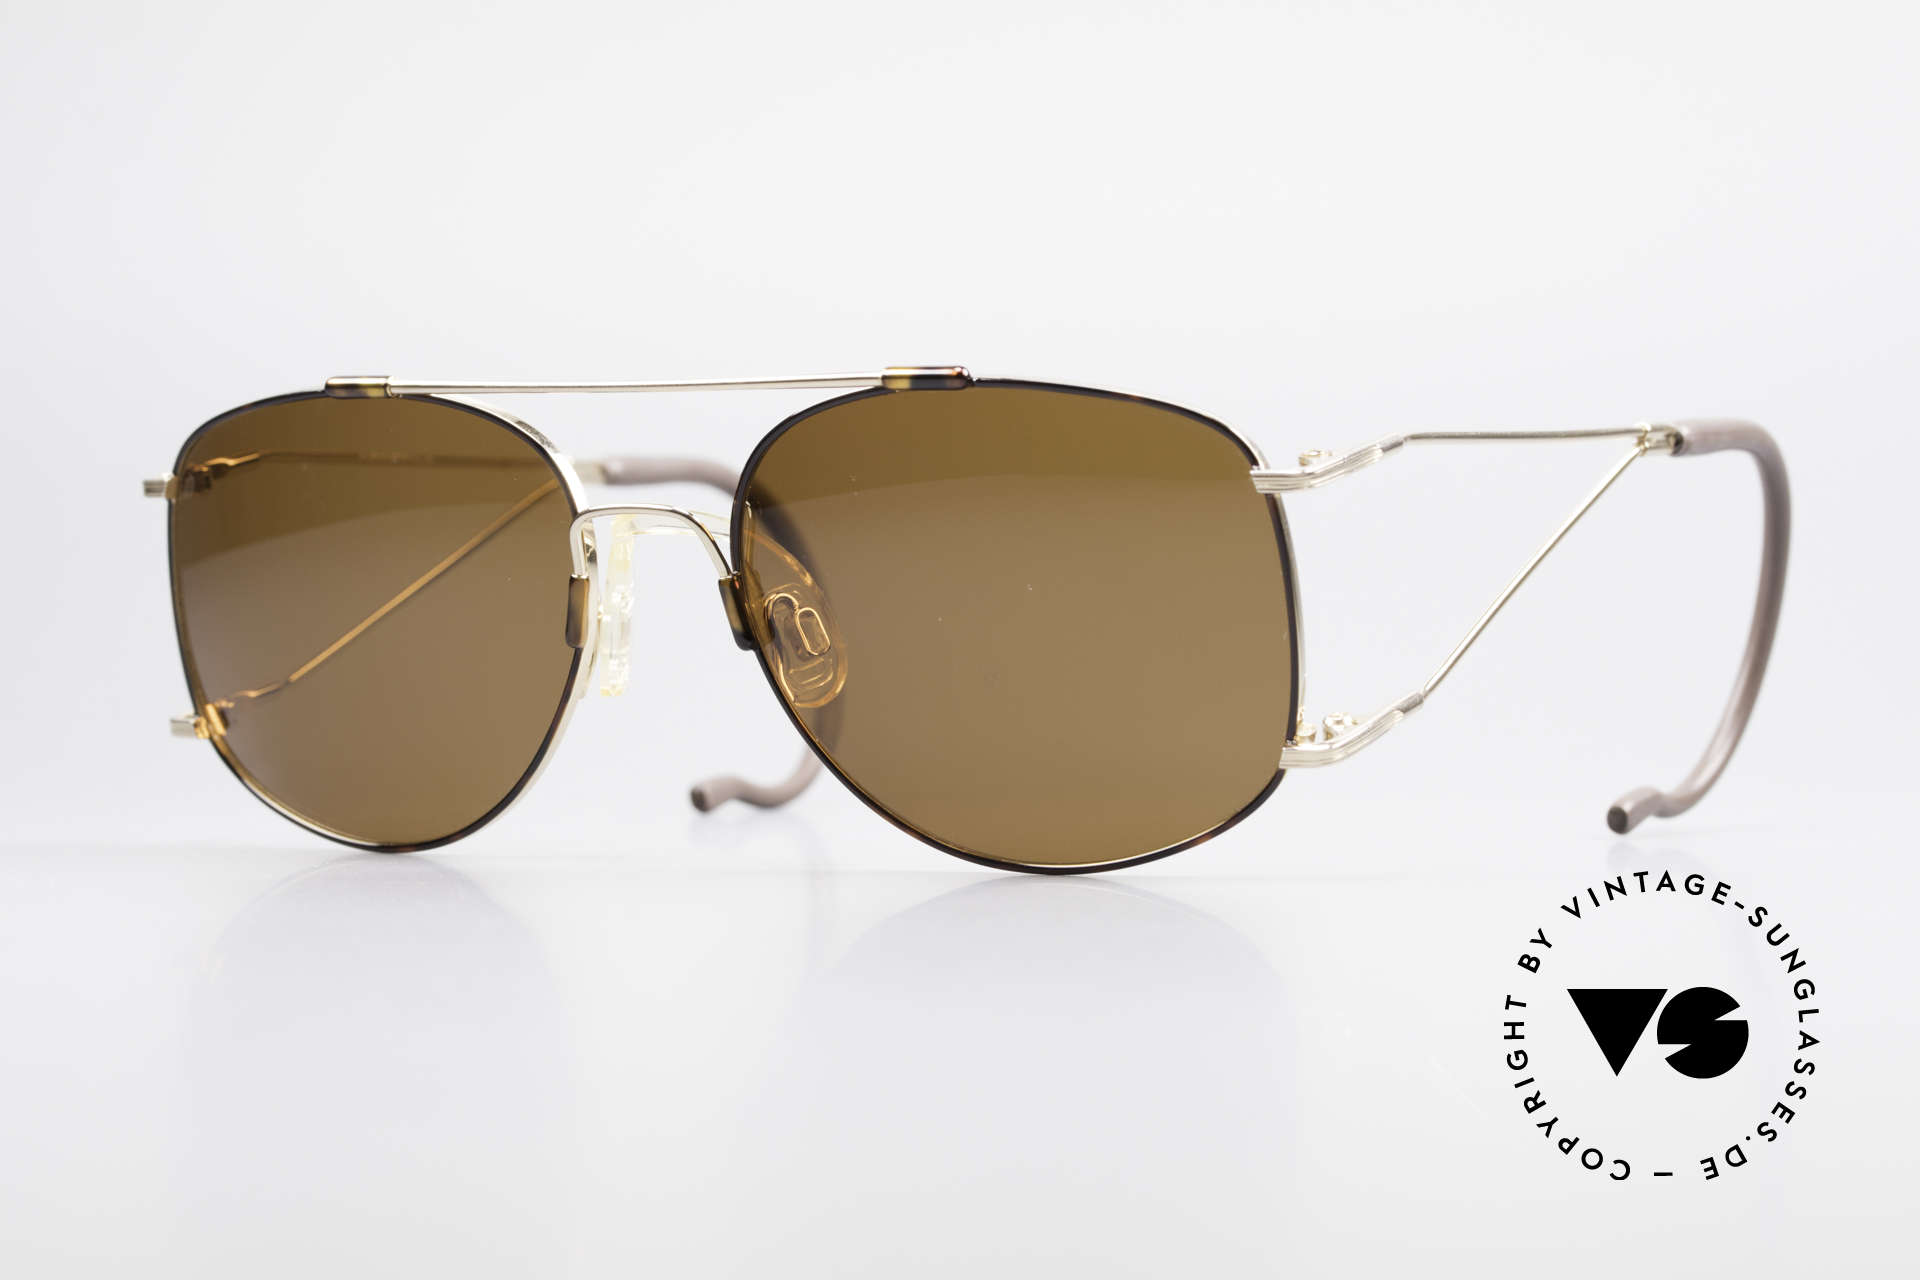 Neostyle Sunsport 1501 Titanflex Vintage Sunglasses, sensational vintage NEOflex sunglasses by Neostyle, Made for Men